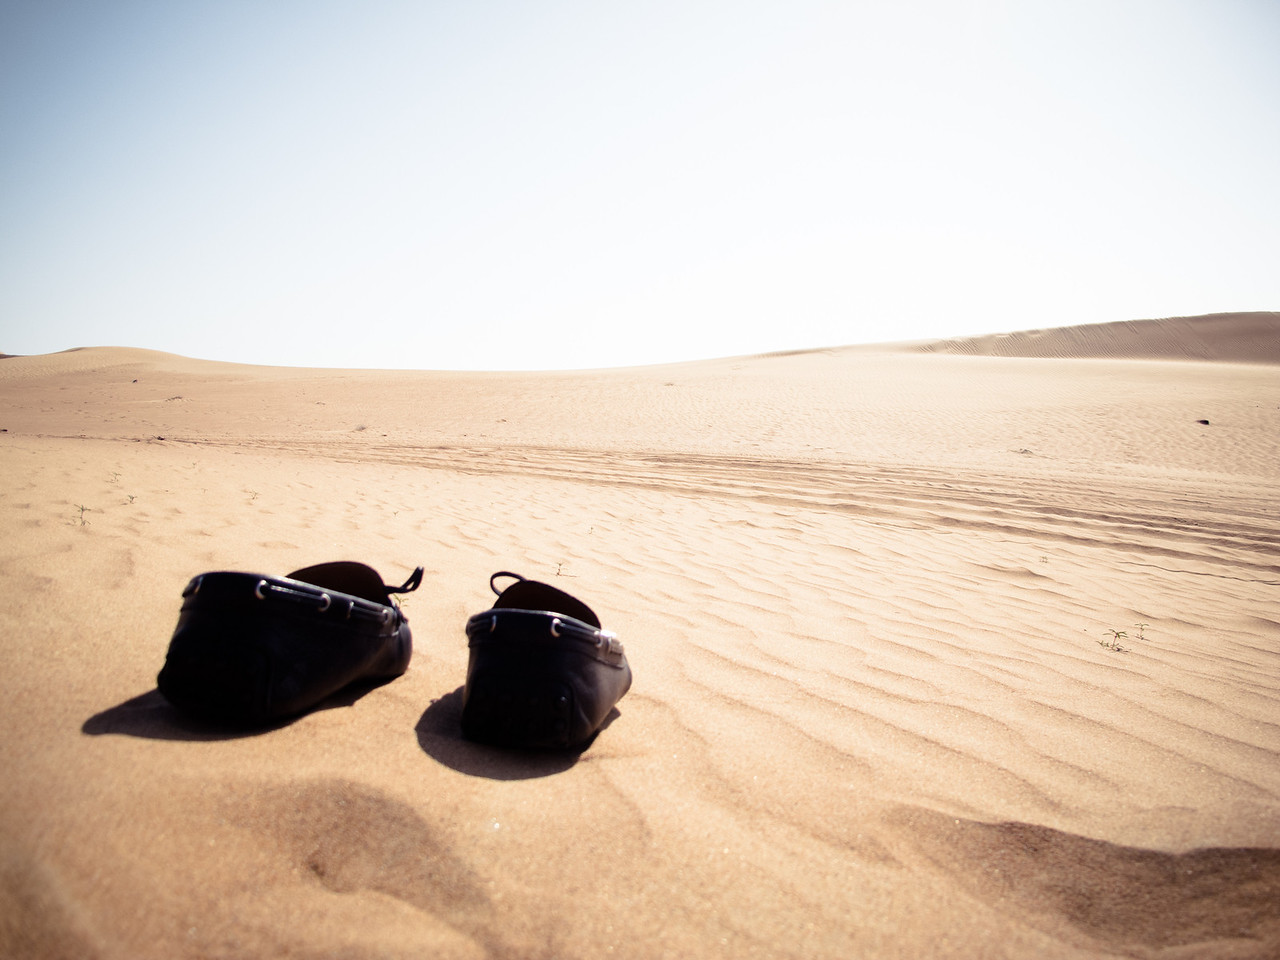 The desert and the wandering shoes